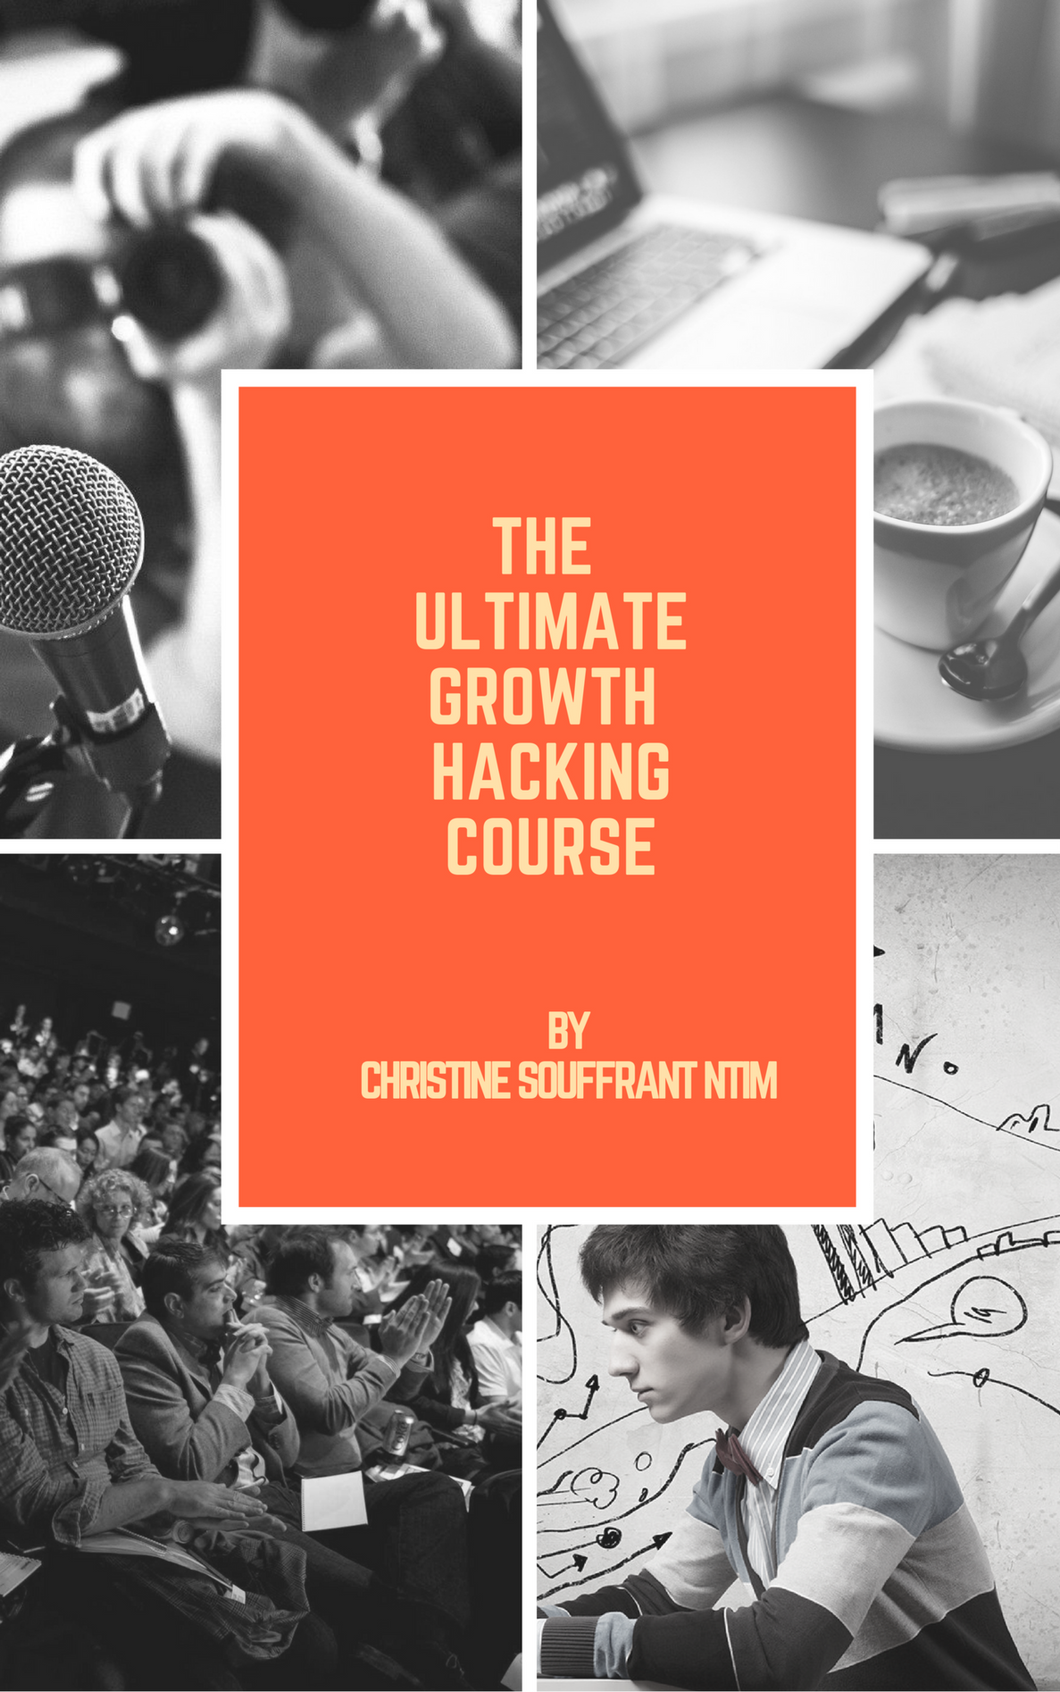 The Ultimate Growth Hacking Course